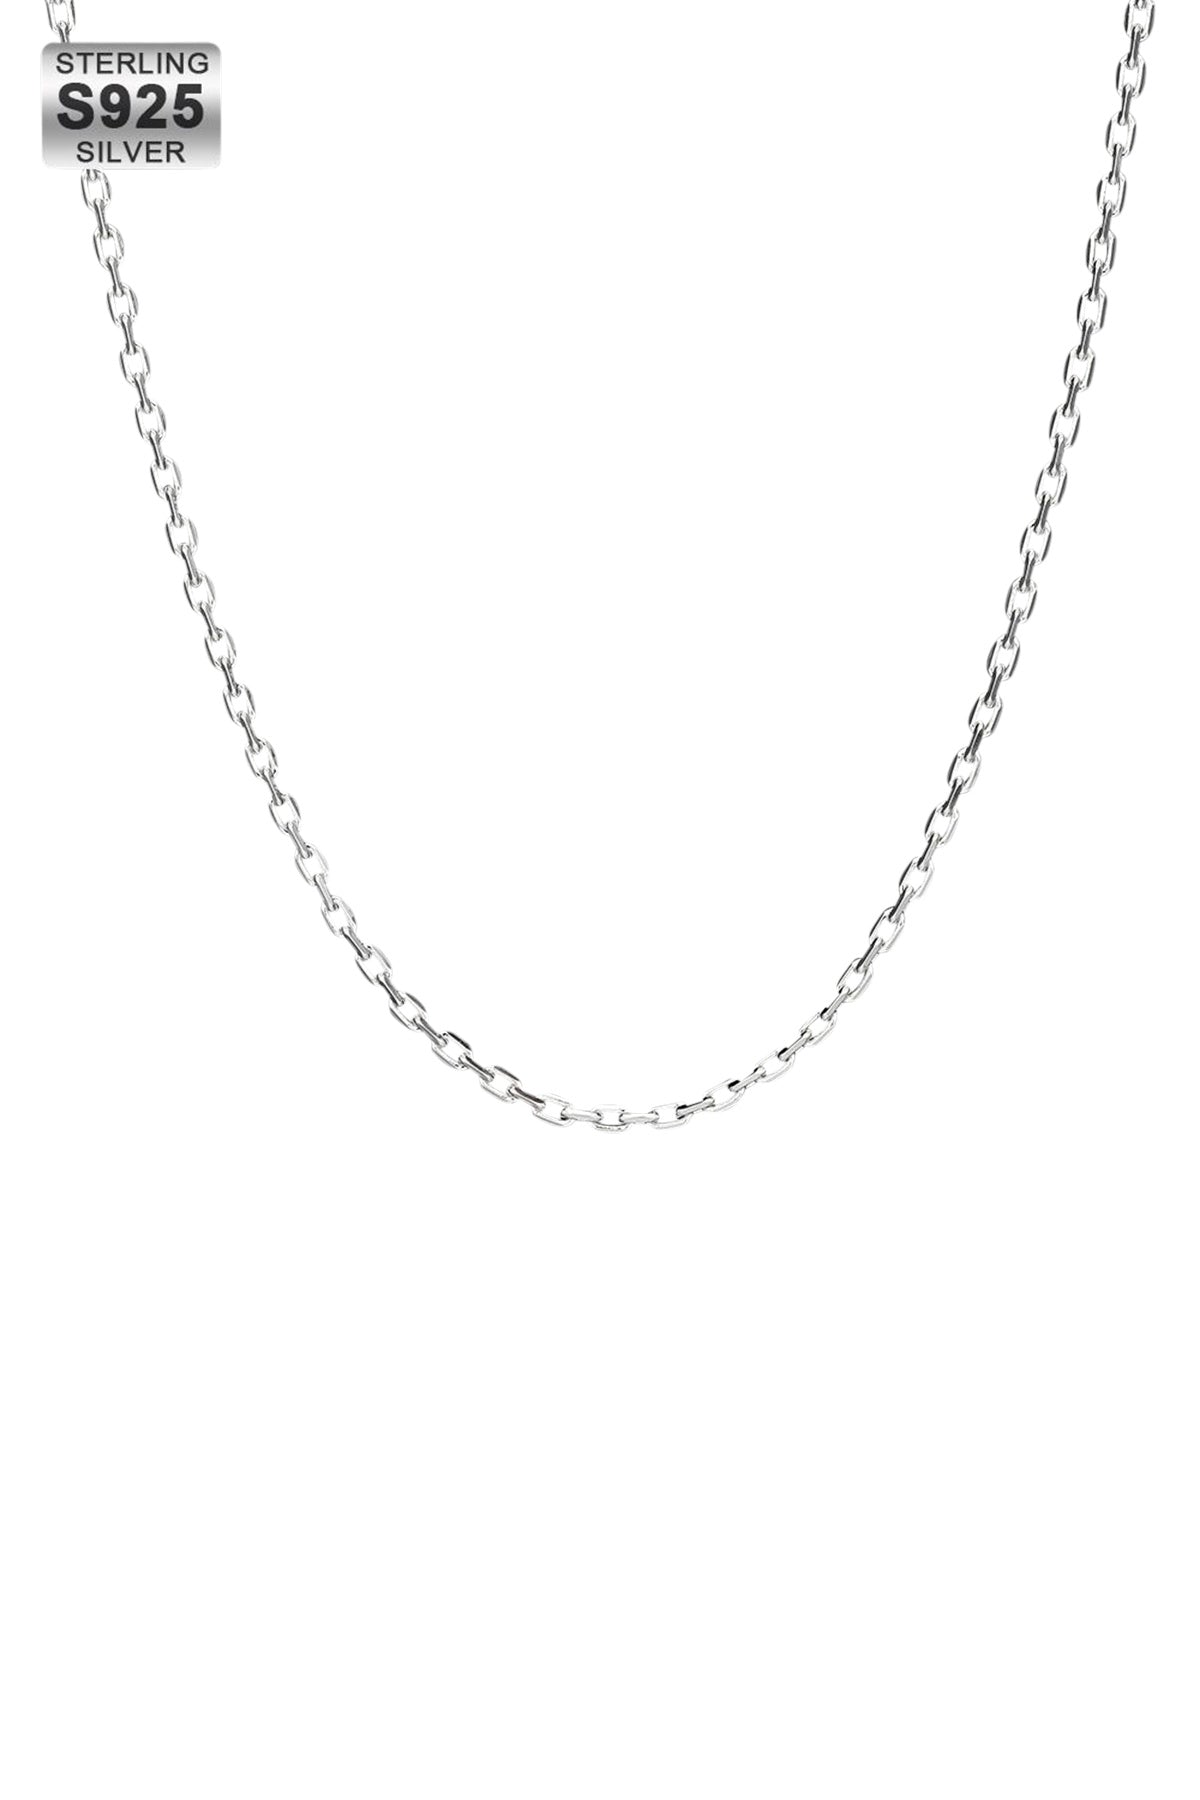 Staple 2.5mm 925 Silver Rolo Cable Chain White Gold